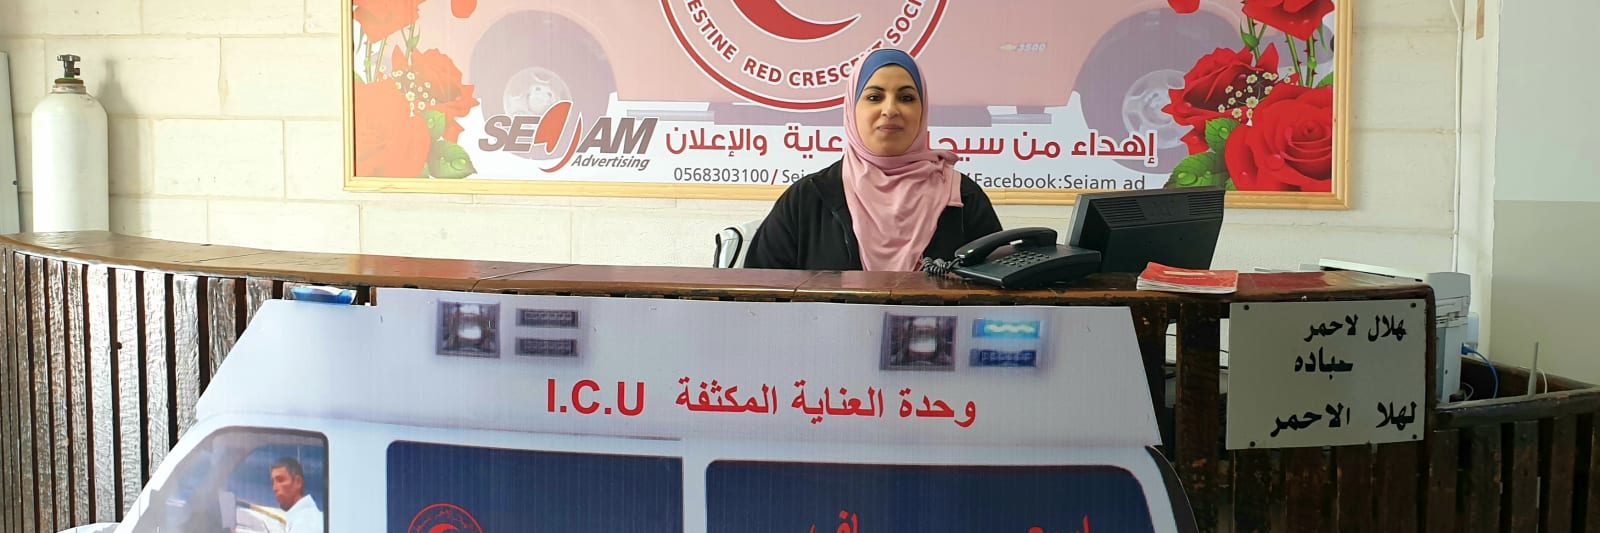 A woman smiles behind the reception desk of the Palestinian Red Crescent Society